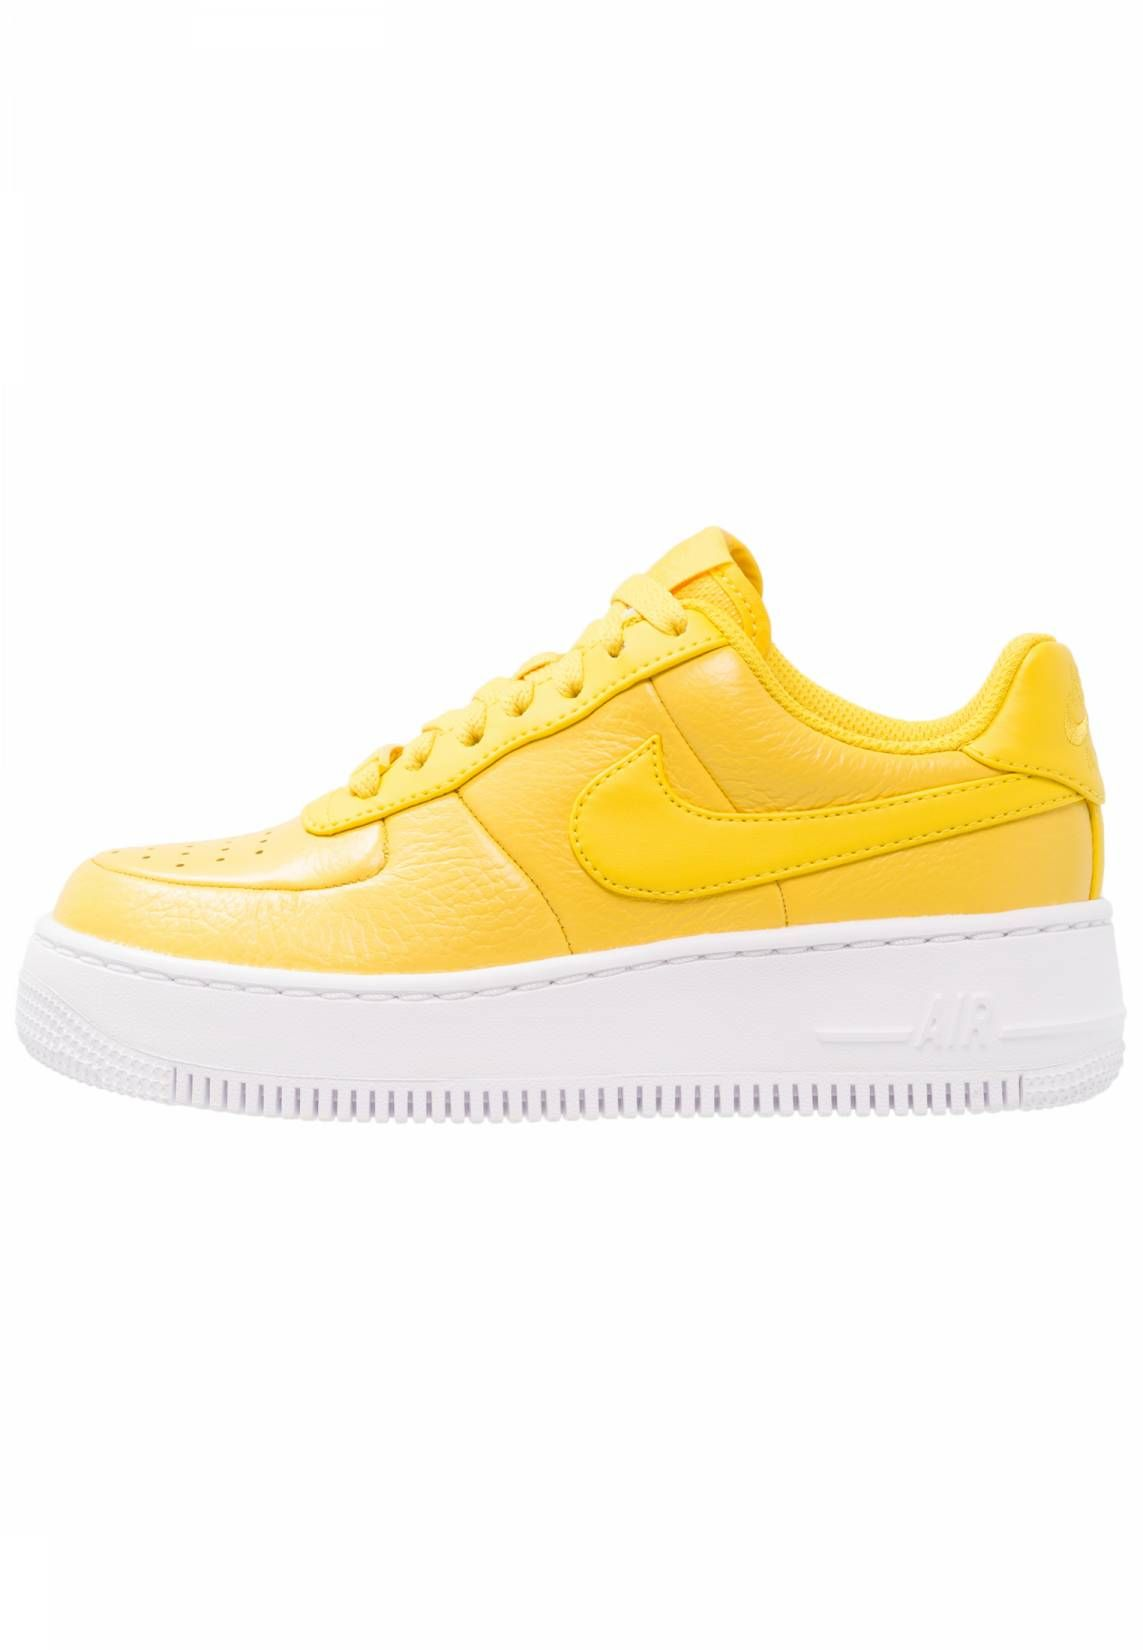 separation shoes b2eb4 a25b6 Nike Sportswear. AIR FORCE 1 UPSTEP PRM LX - Sneaker low - vivid sulfur